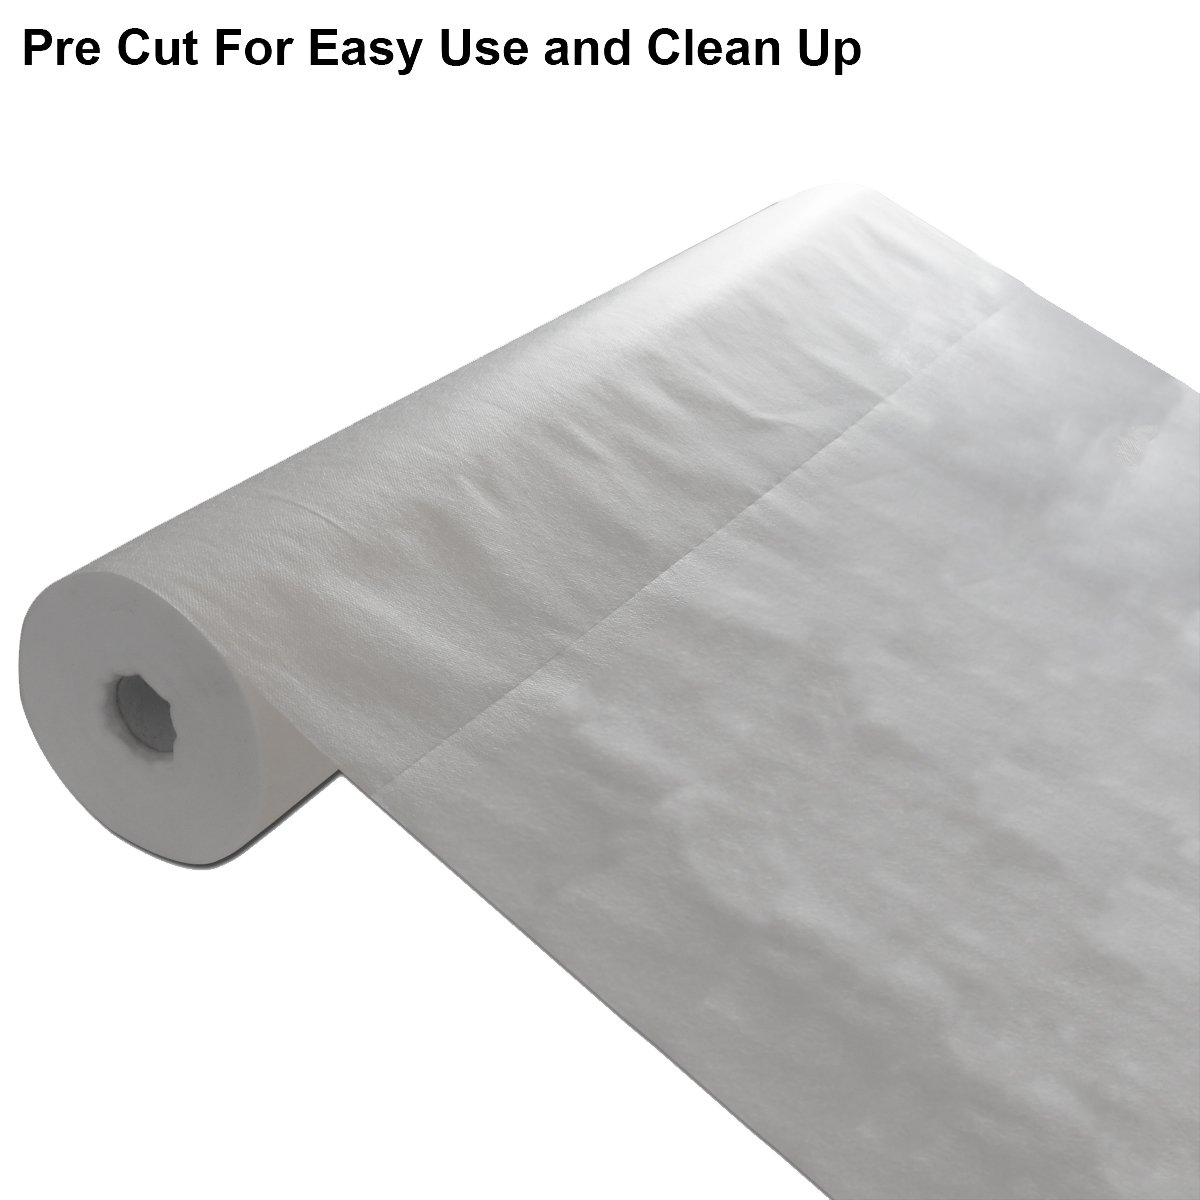 2 Rolls of 70.5''x30'' 50 Sheets Disposable Non-Woven Paper Exam Table Bed Cover by TOA Supply (Image #2)